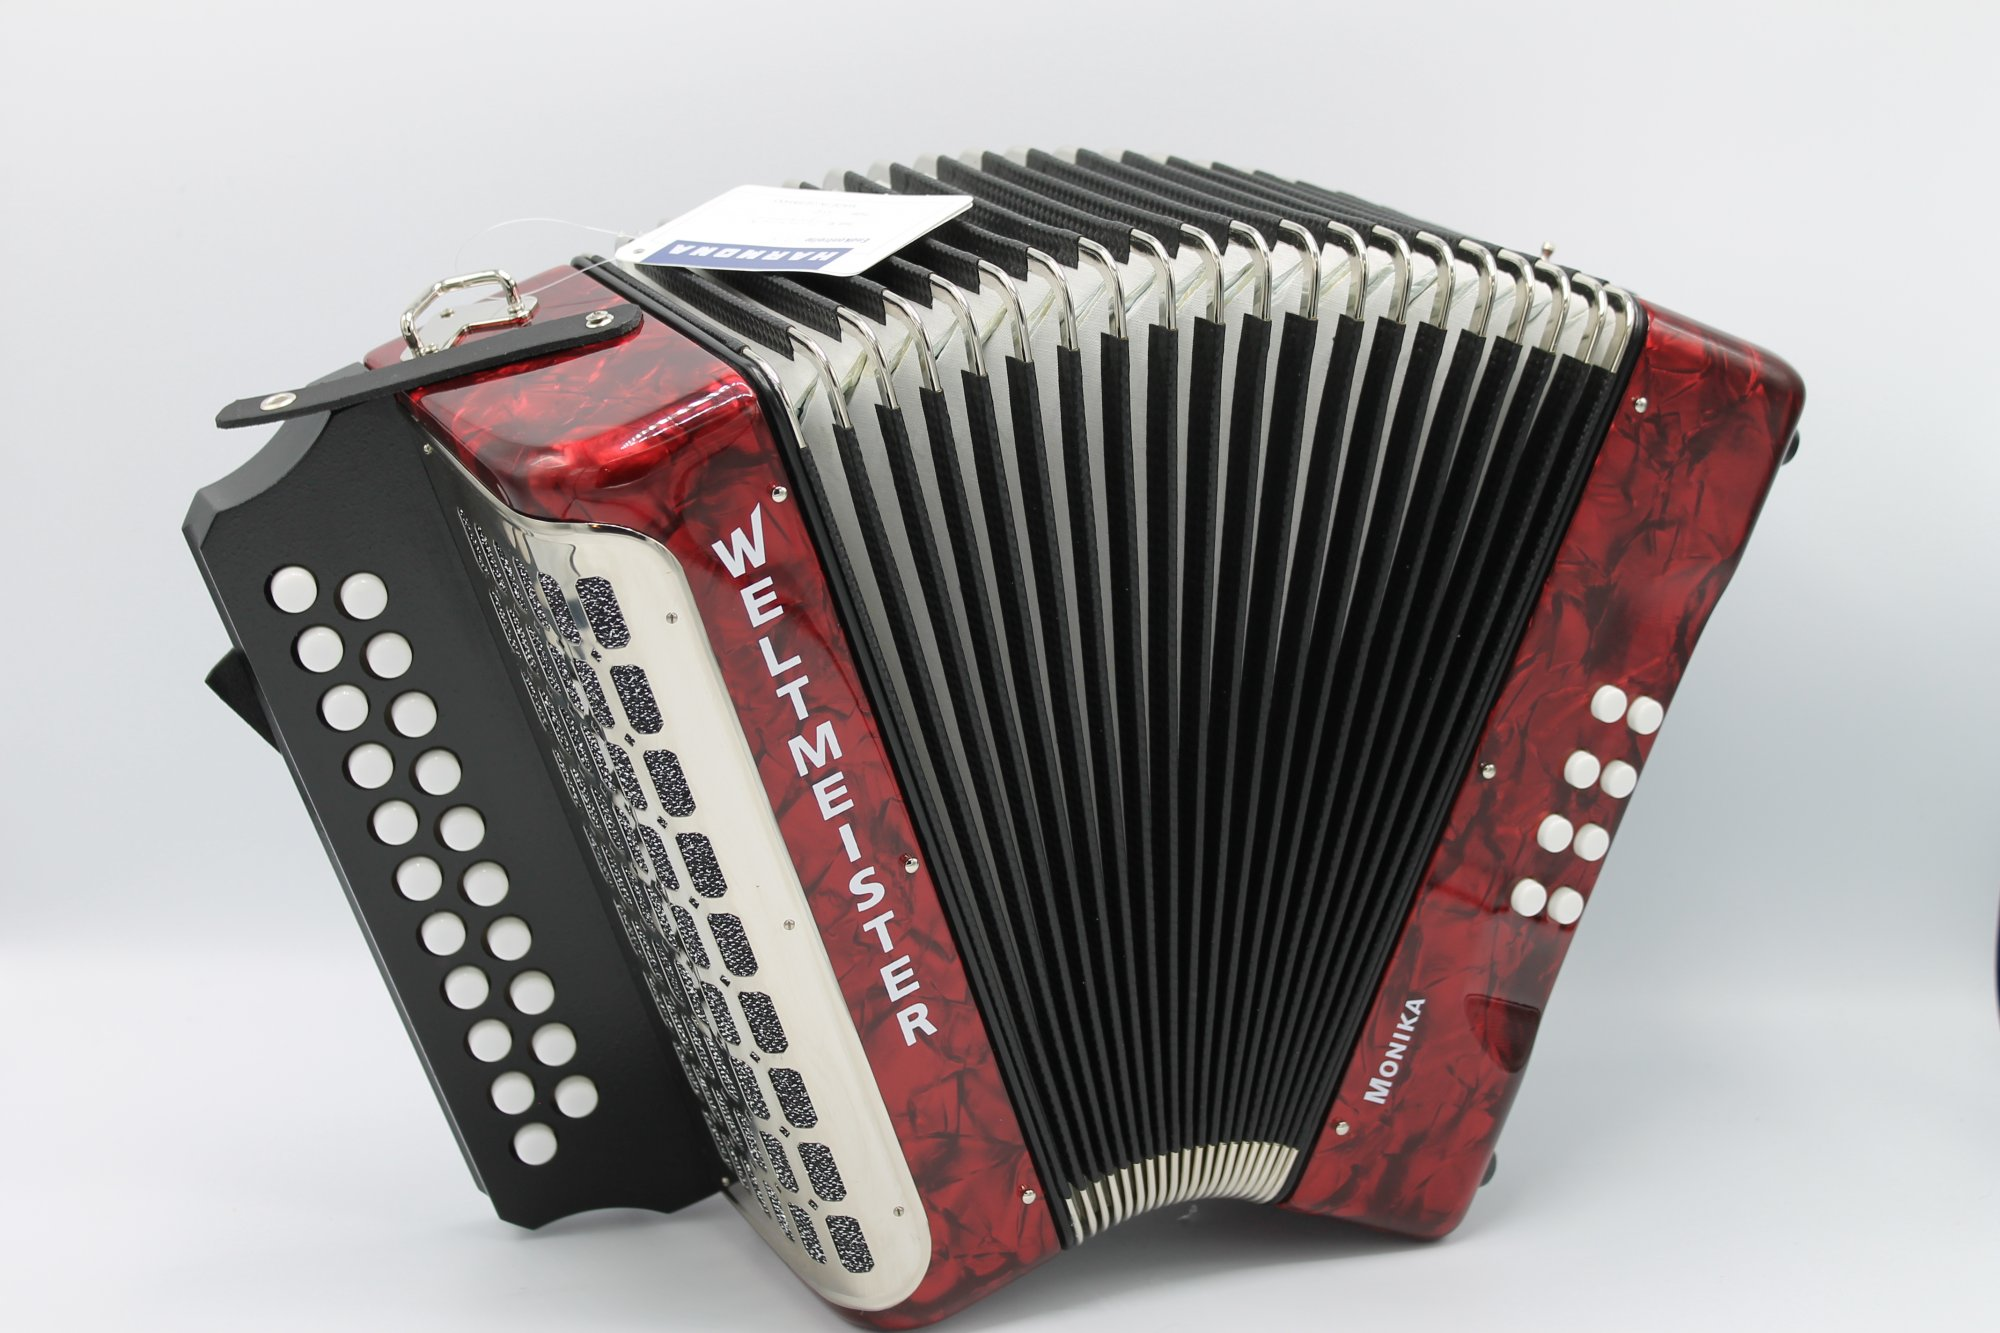 NEW Red Weltmeister 406 Monika Diatonic Button Accordion GC MM 21 8